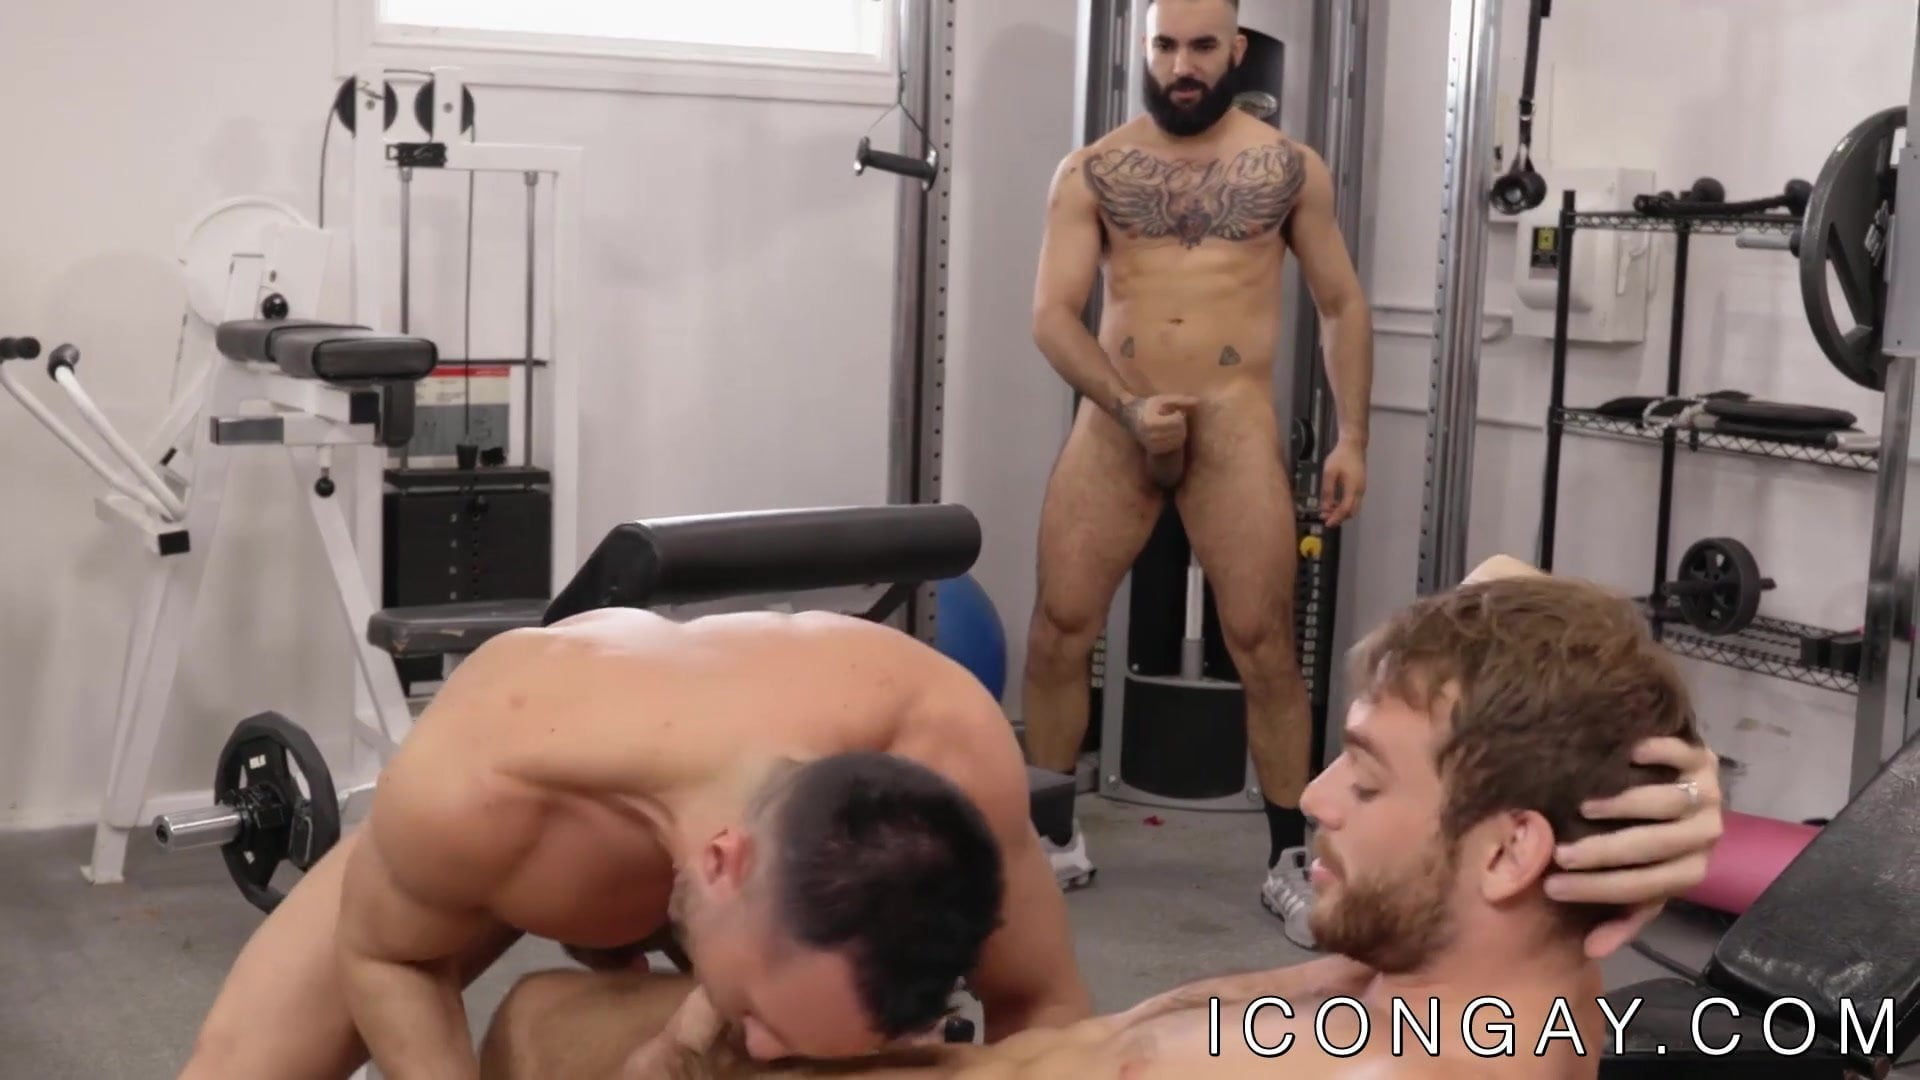 Three muscular gays rimming and anal banging on the health club